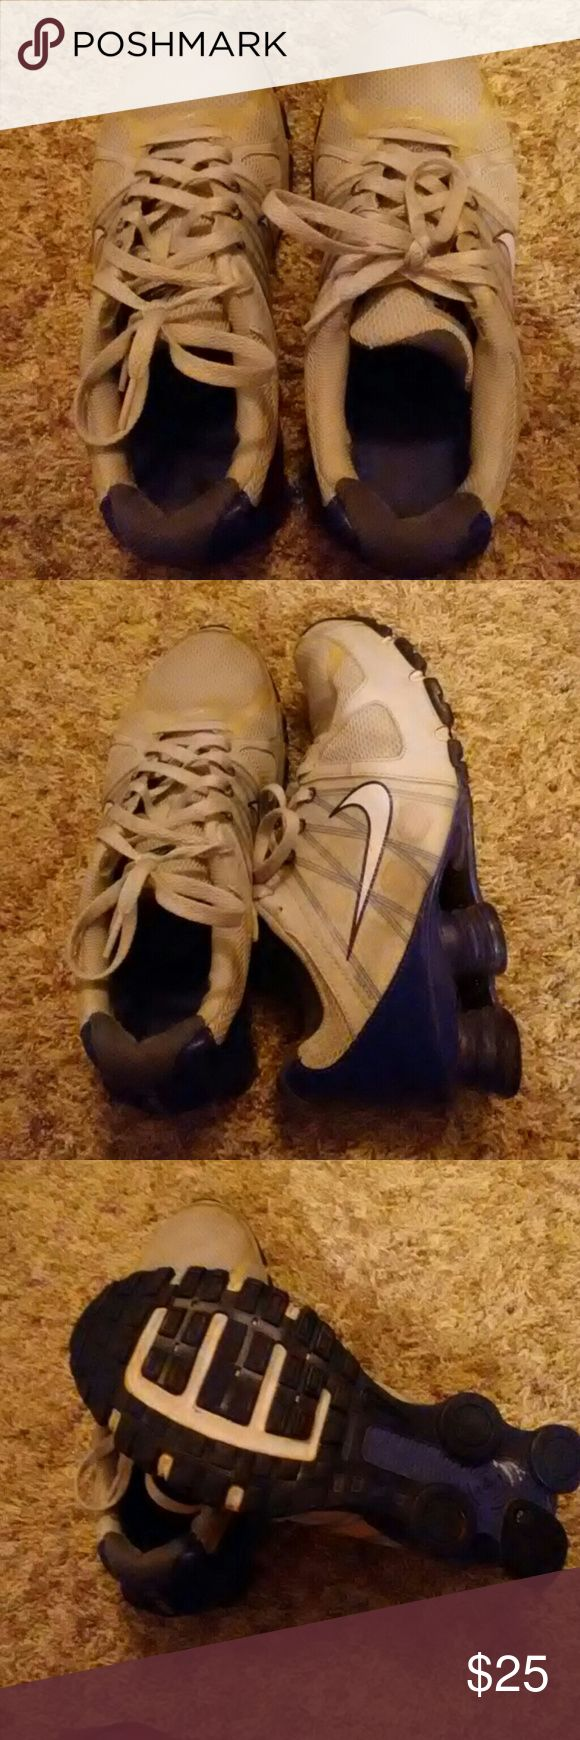 Nikes Pre-Loved still a lot of life left! Nike Shocks Nike Shoes Athletic Shoes